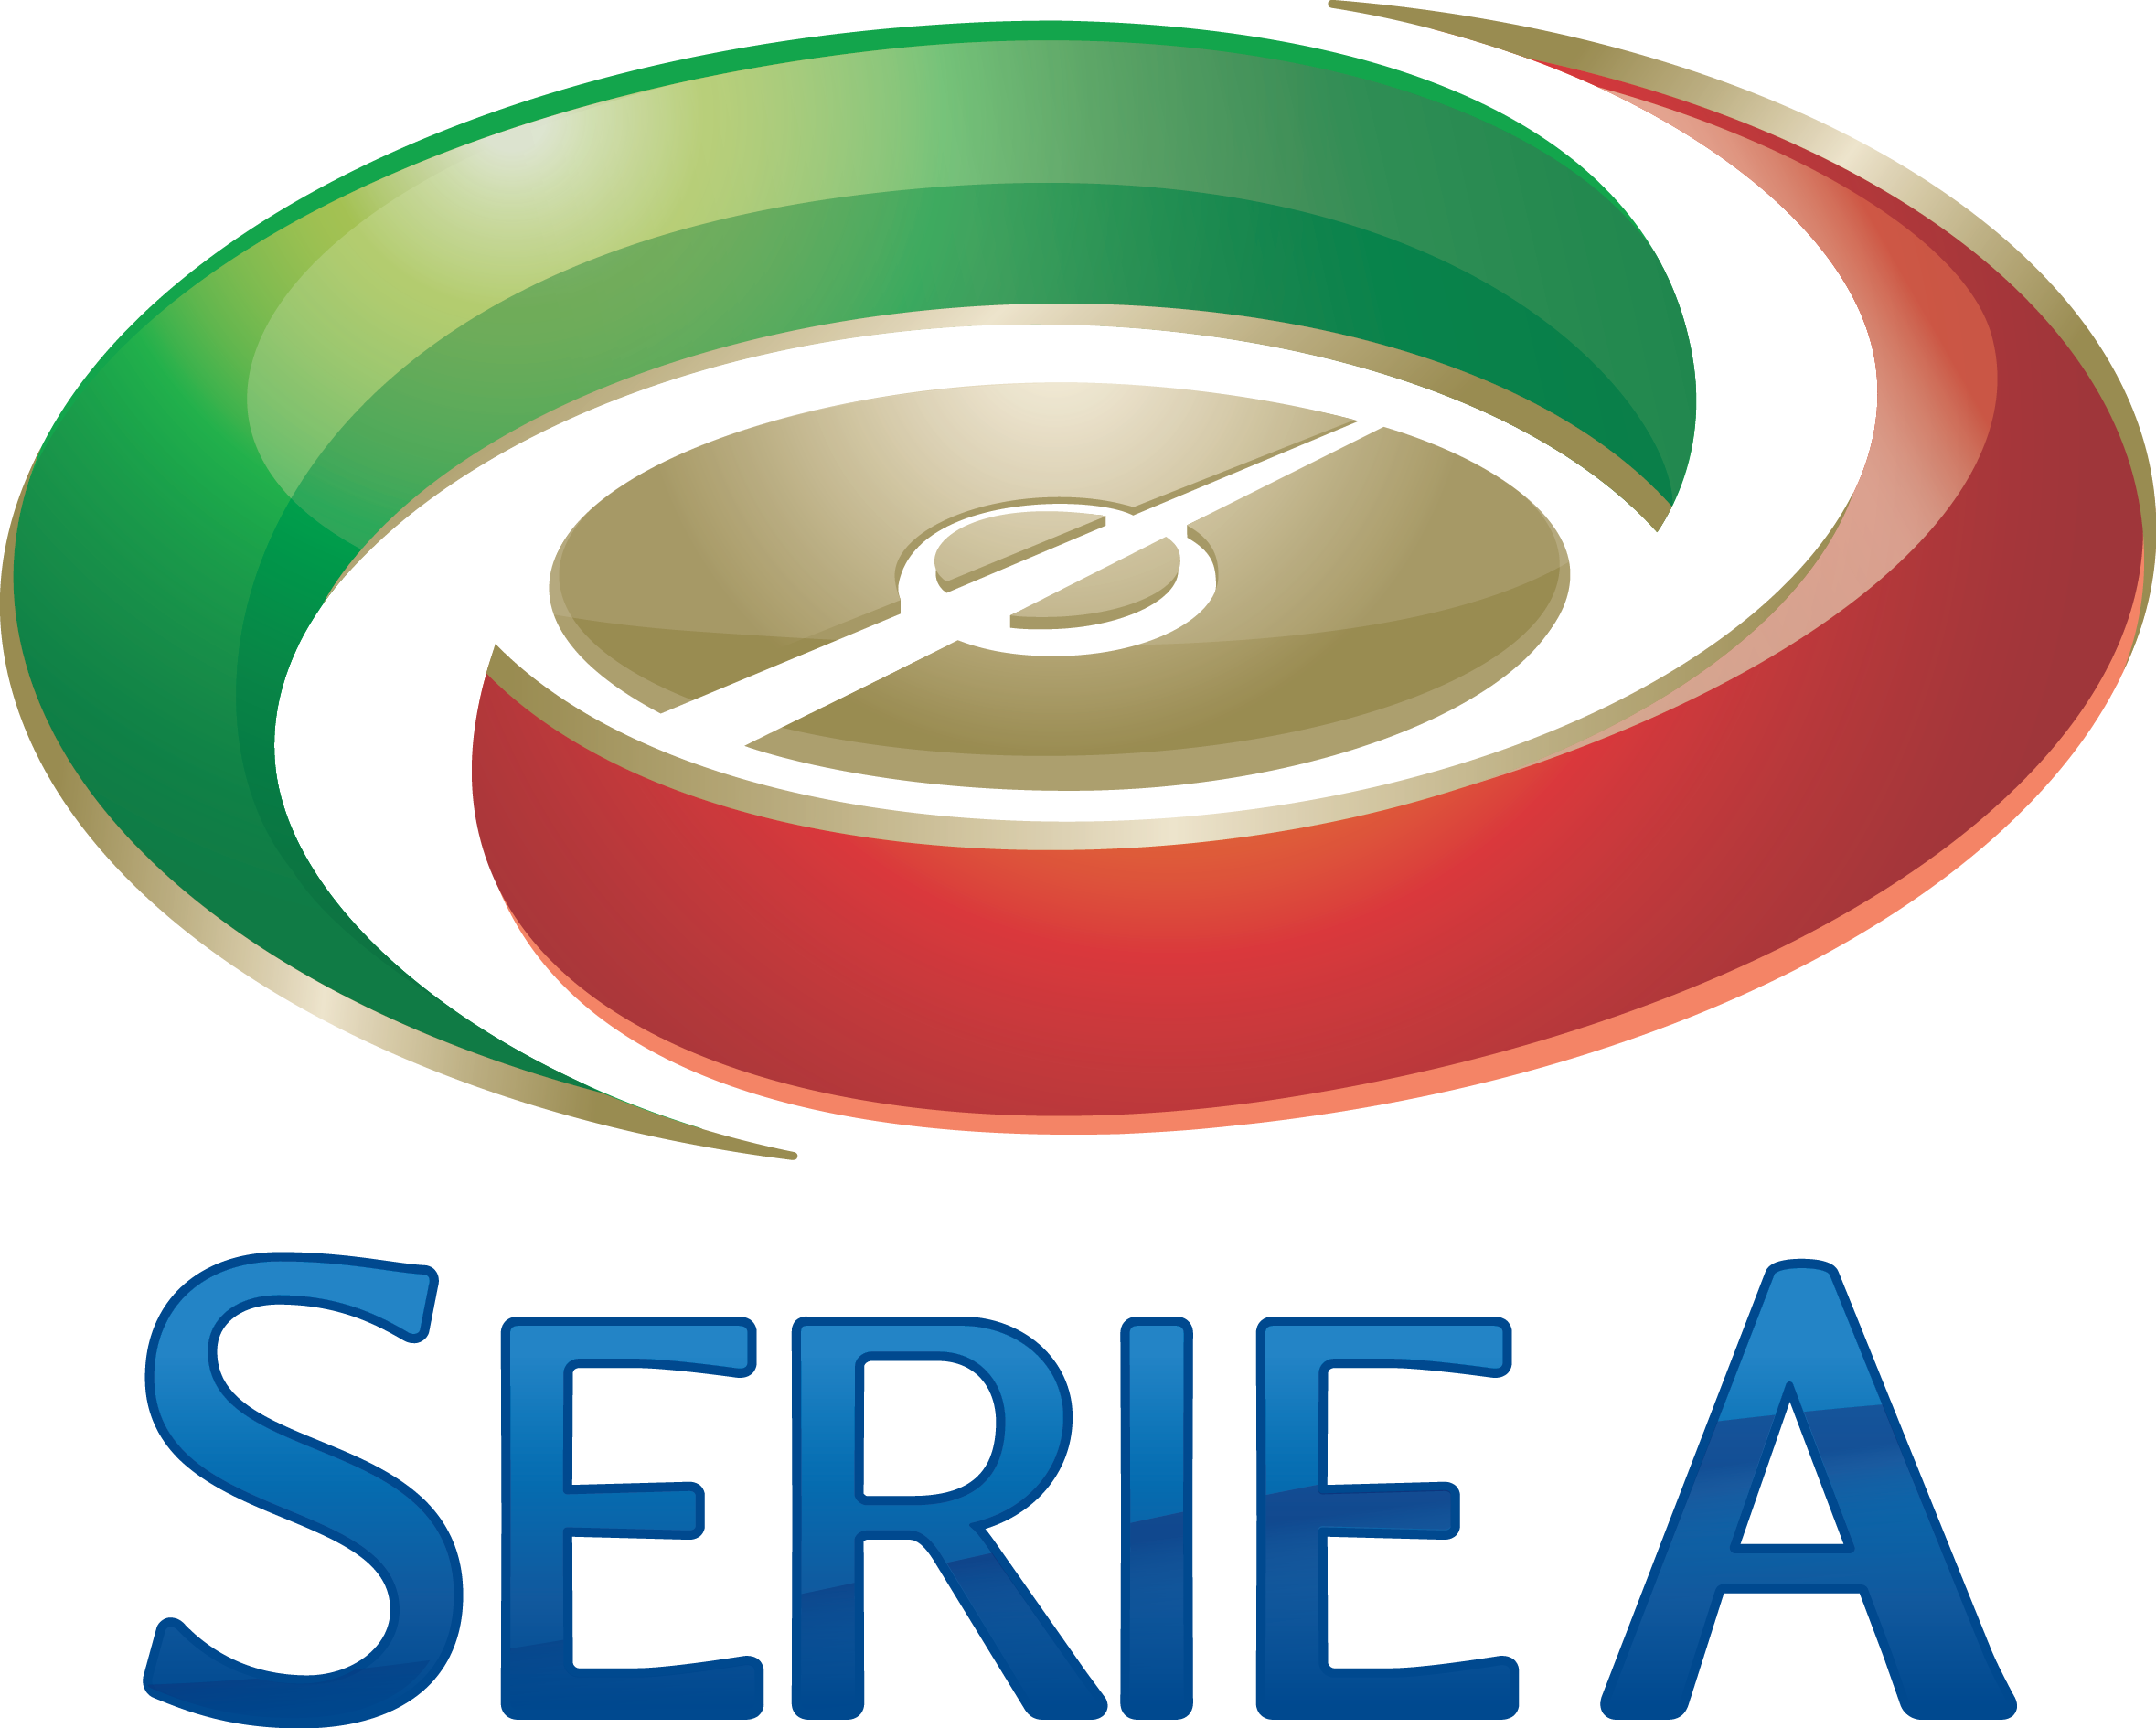 Atalanta vs Sassuolo 2-1 All goals and highlights 12/04/2015